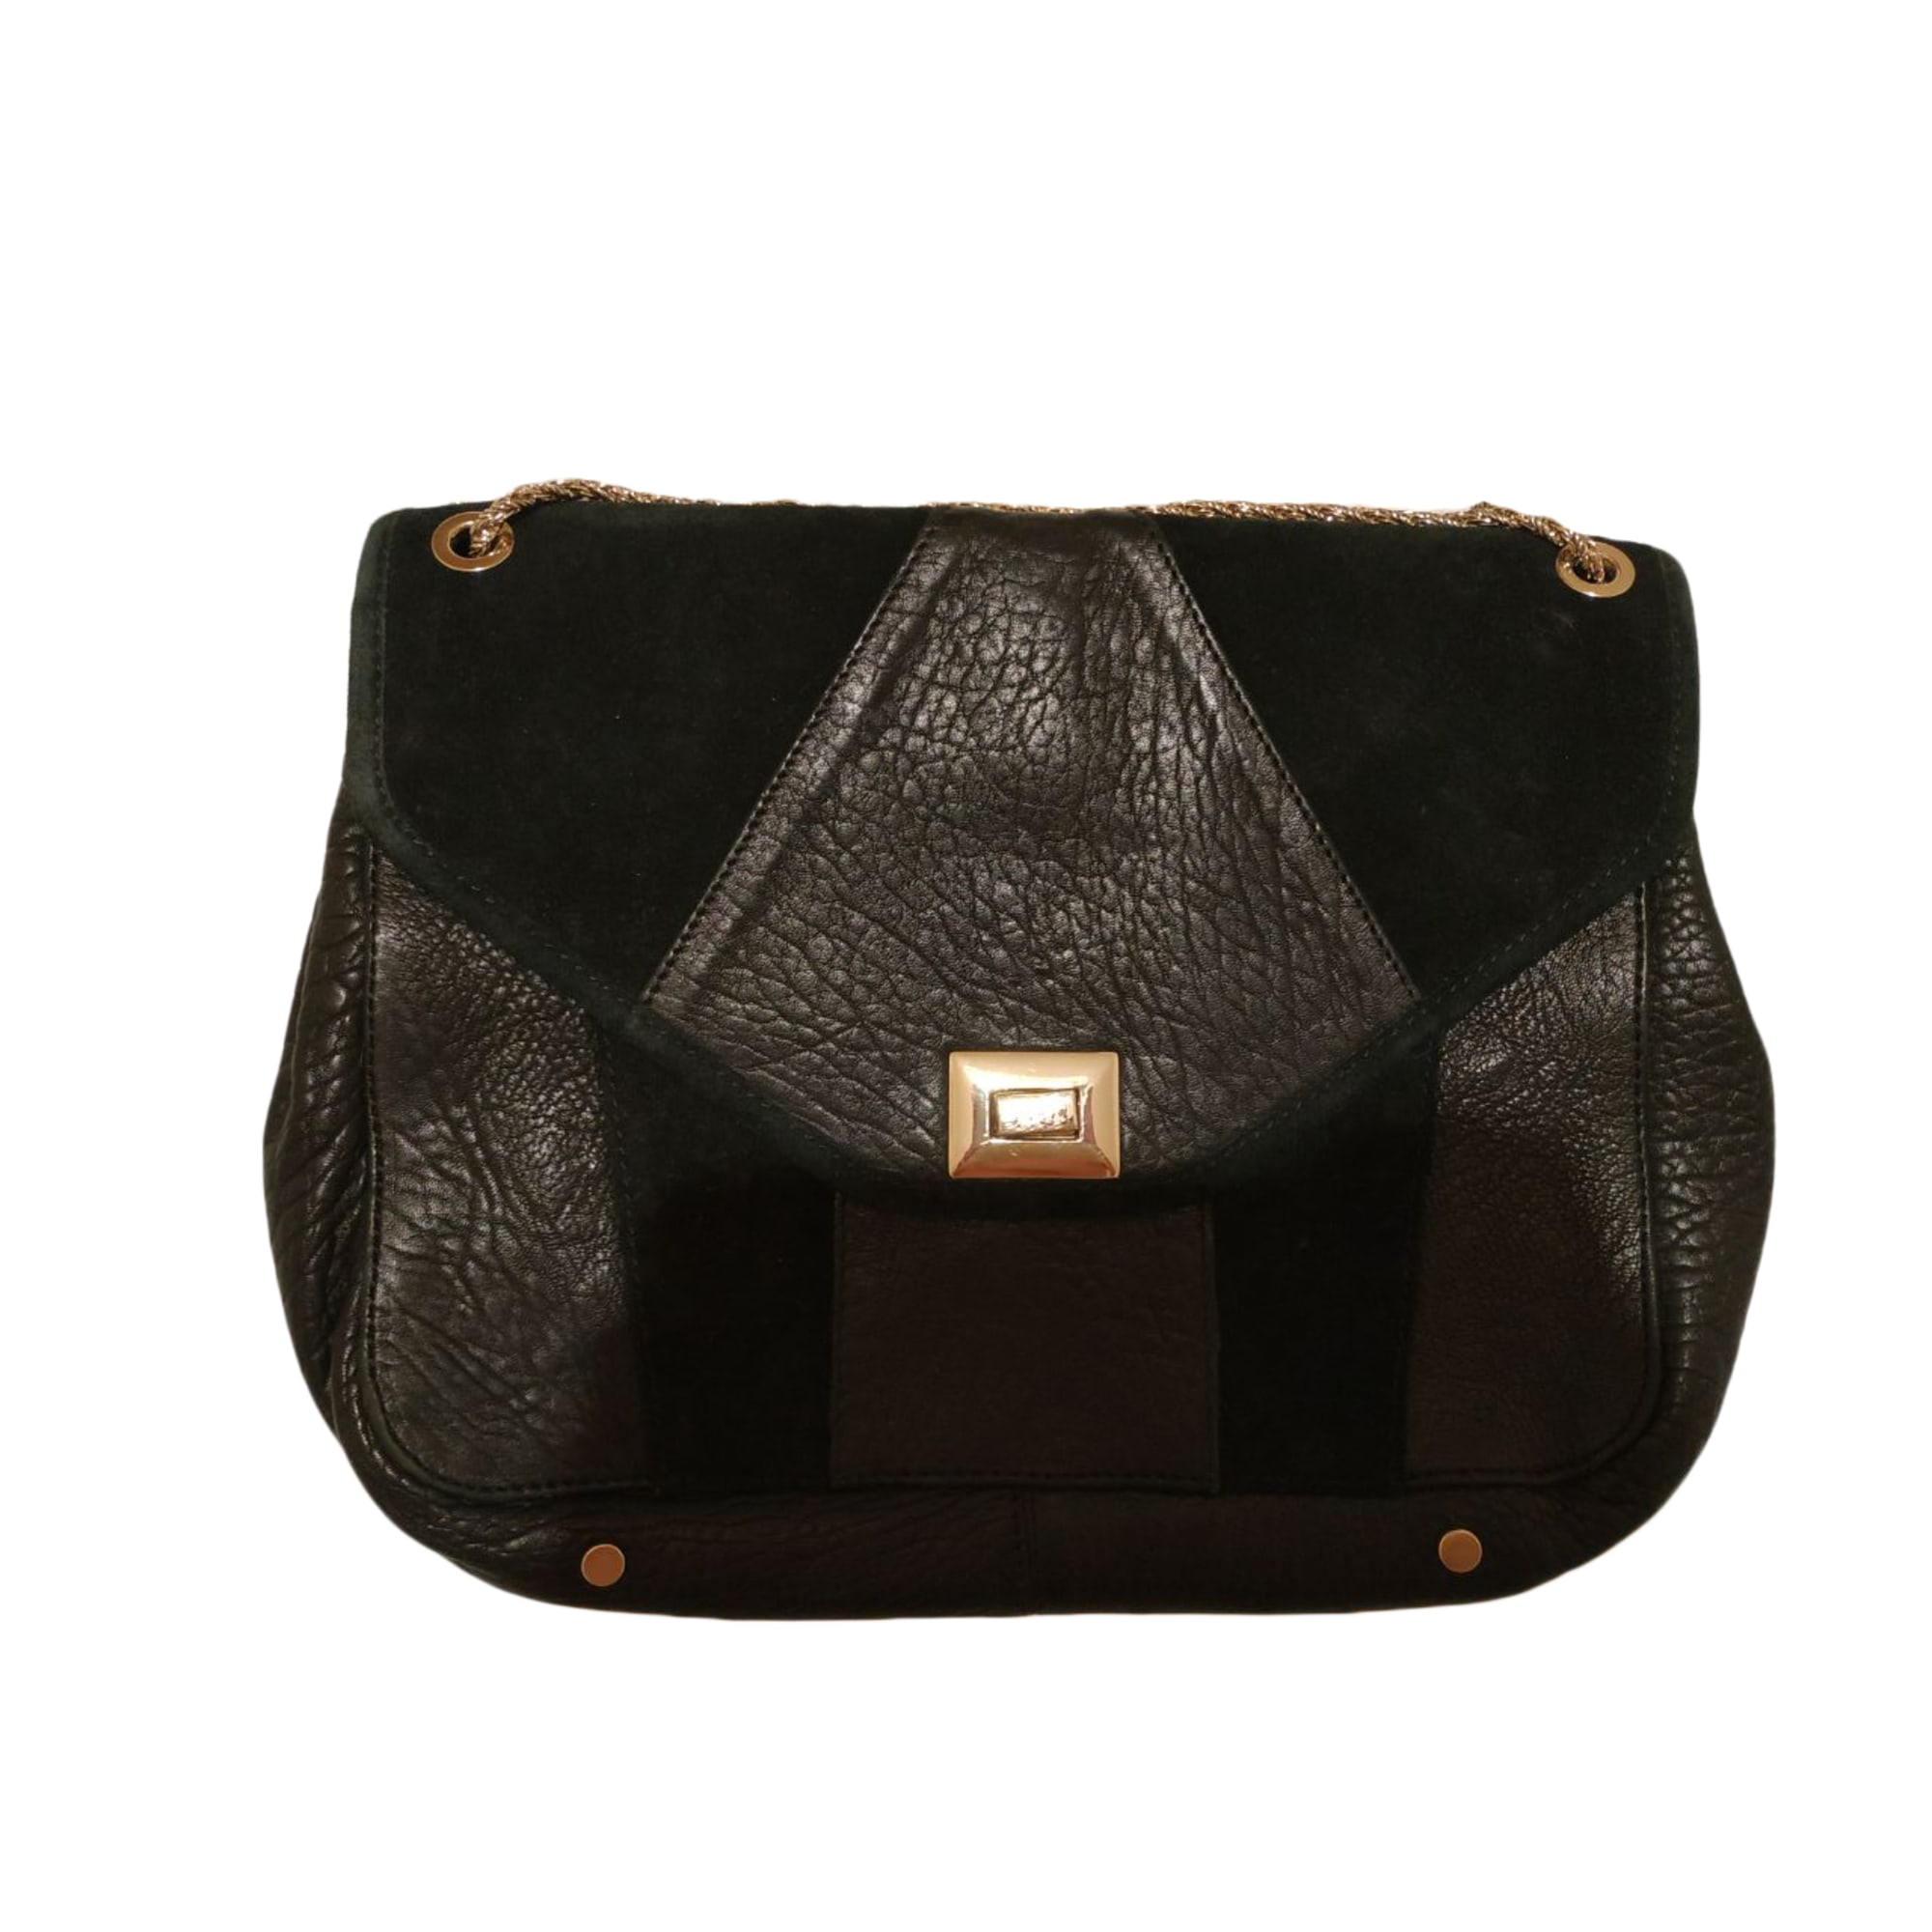 Leather Shoulder Bag SÉZANE Black